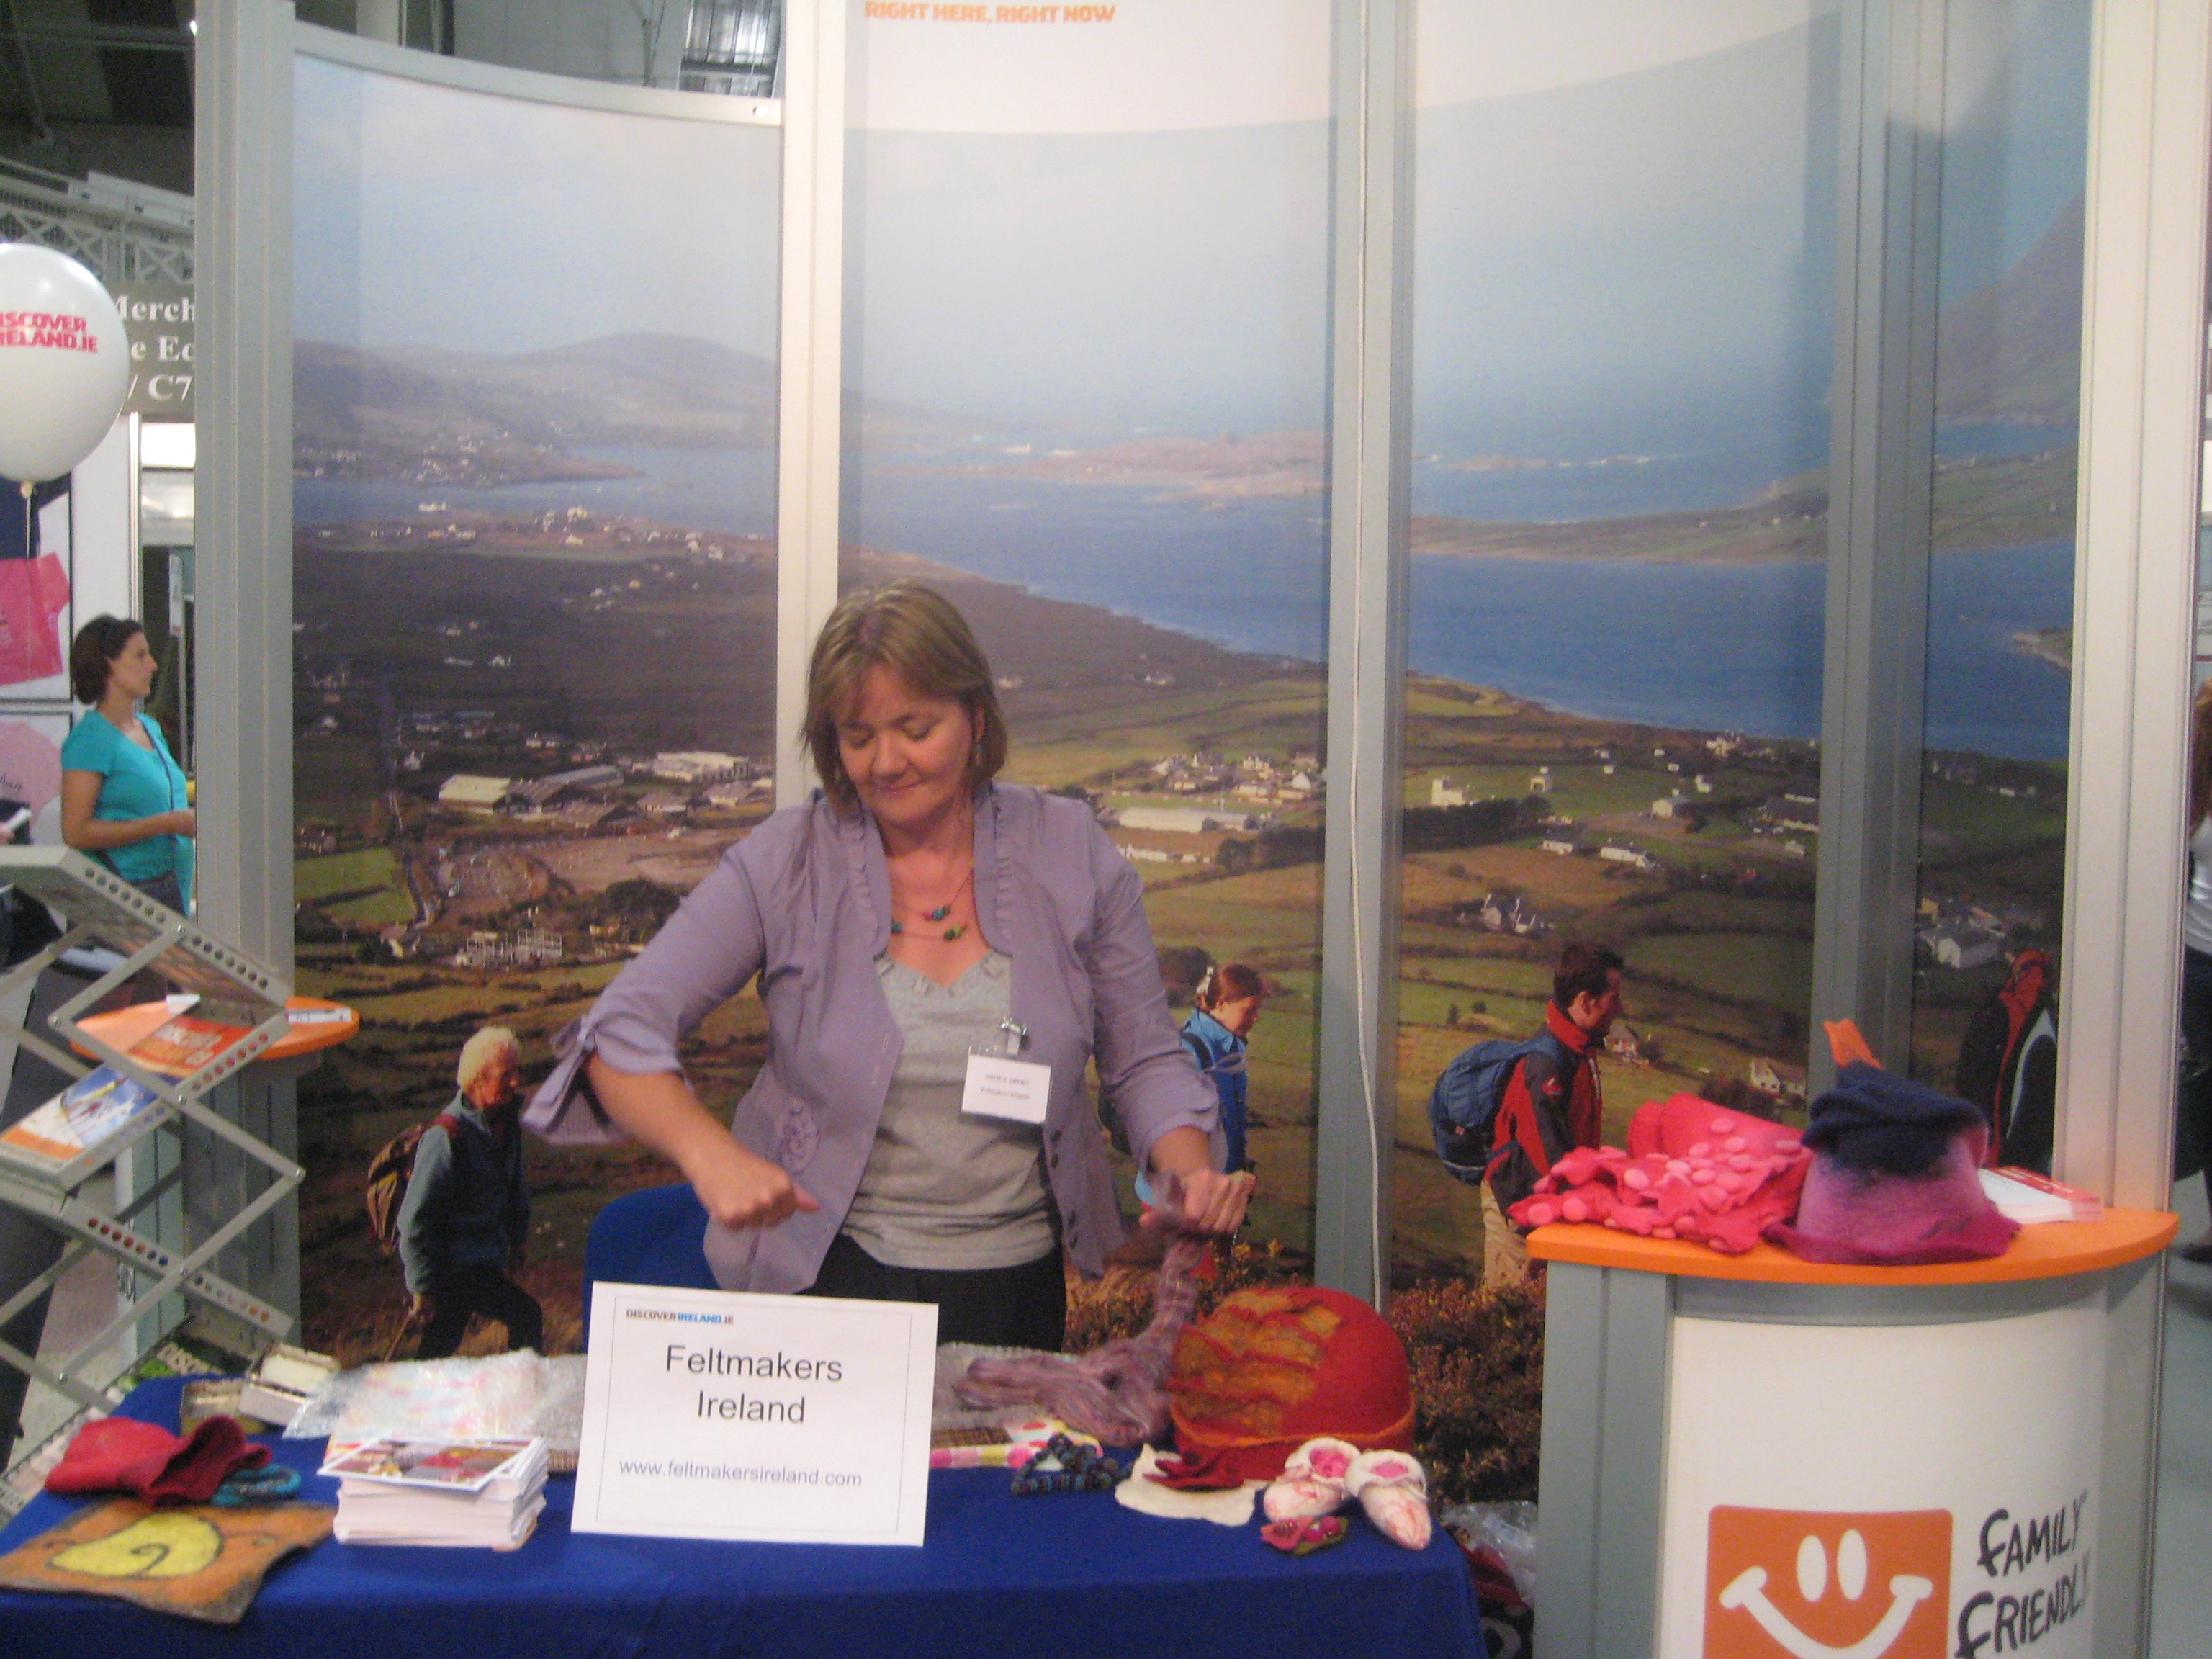 Feltmakers Ireland's stand at the RDS Horse Show